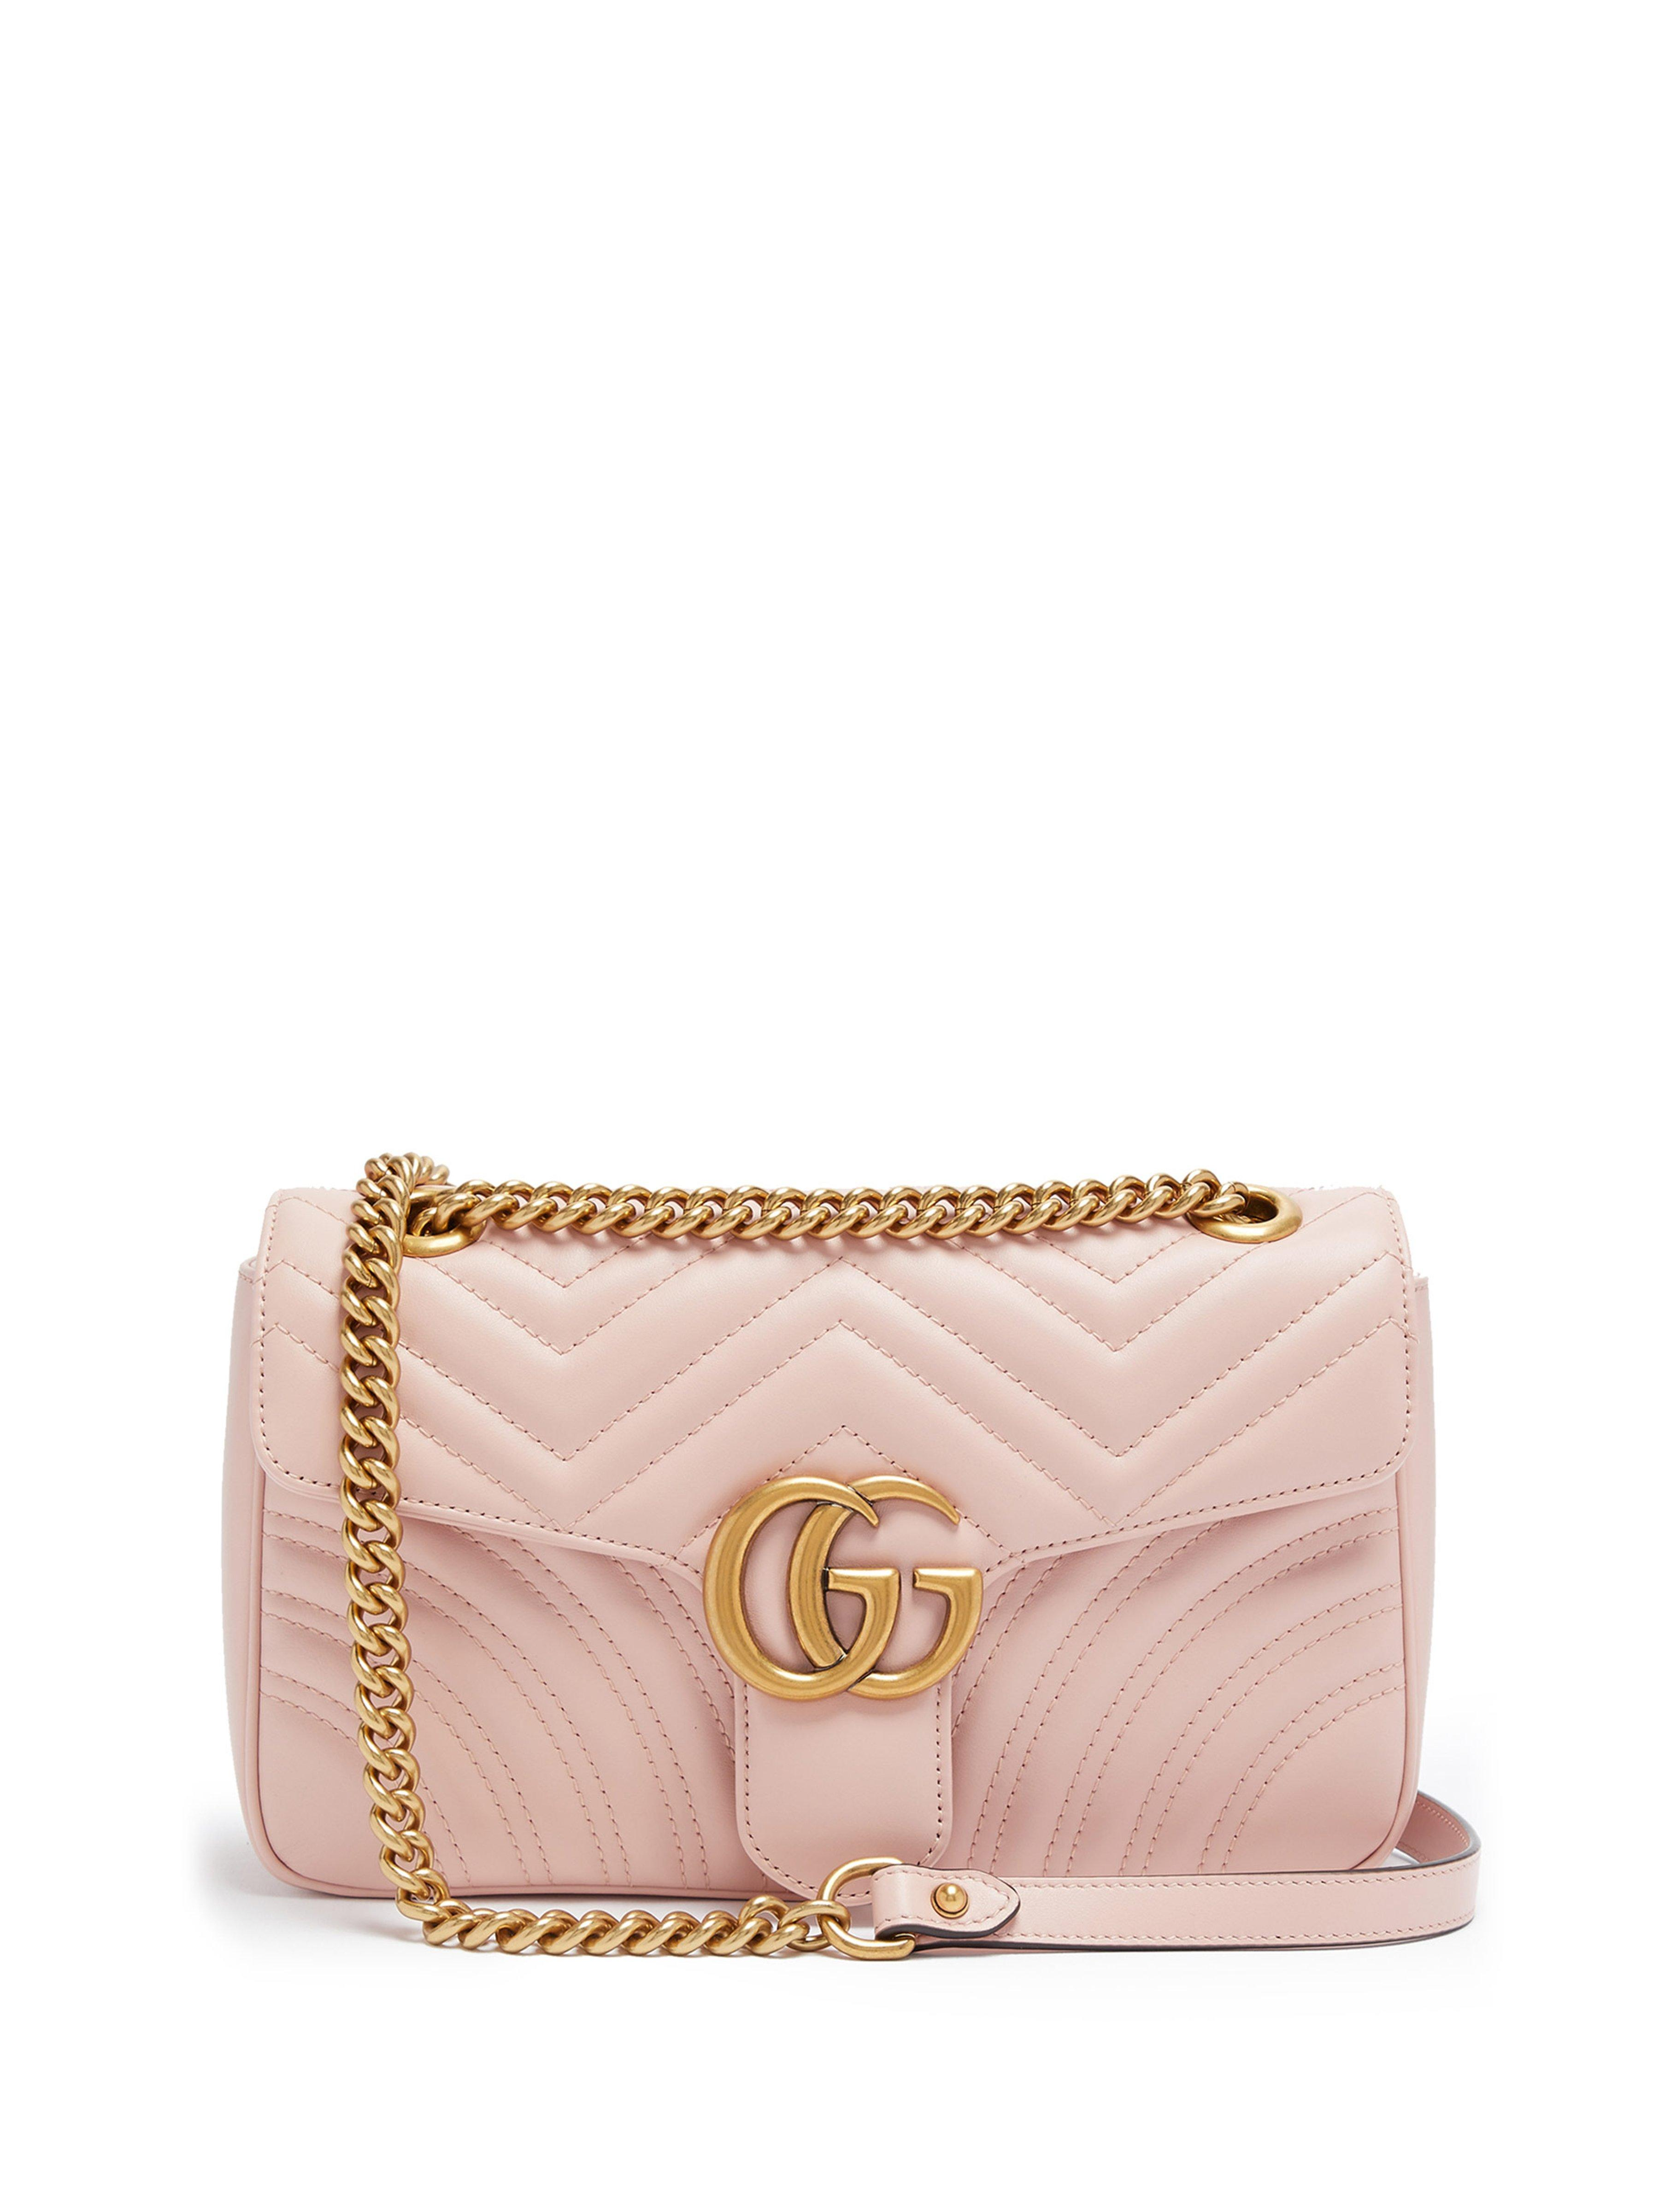 0a54874e18bb Gucci Gg Marmont Small Quilted Leather Shoulder Bag in Pink - Save ...